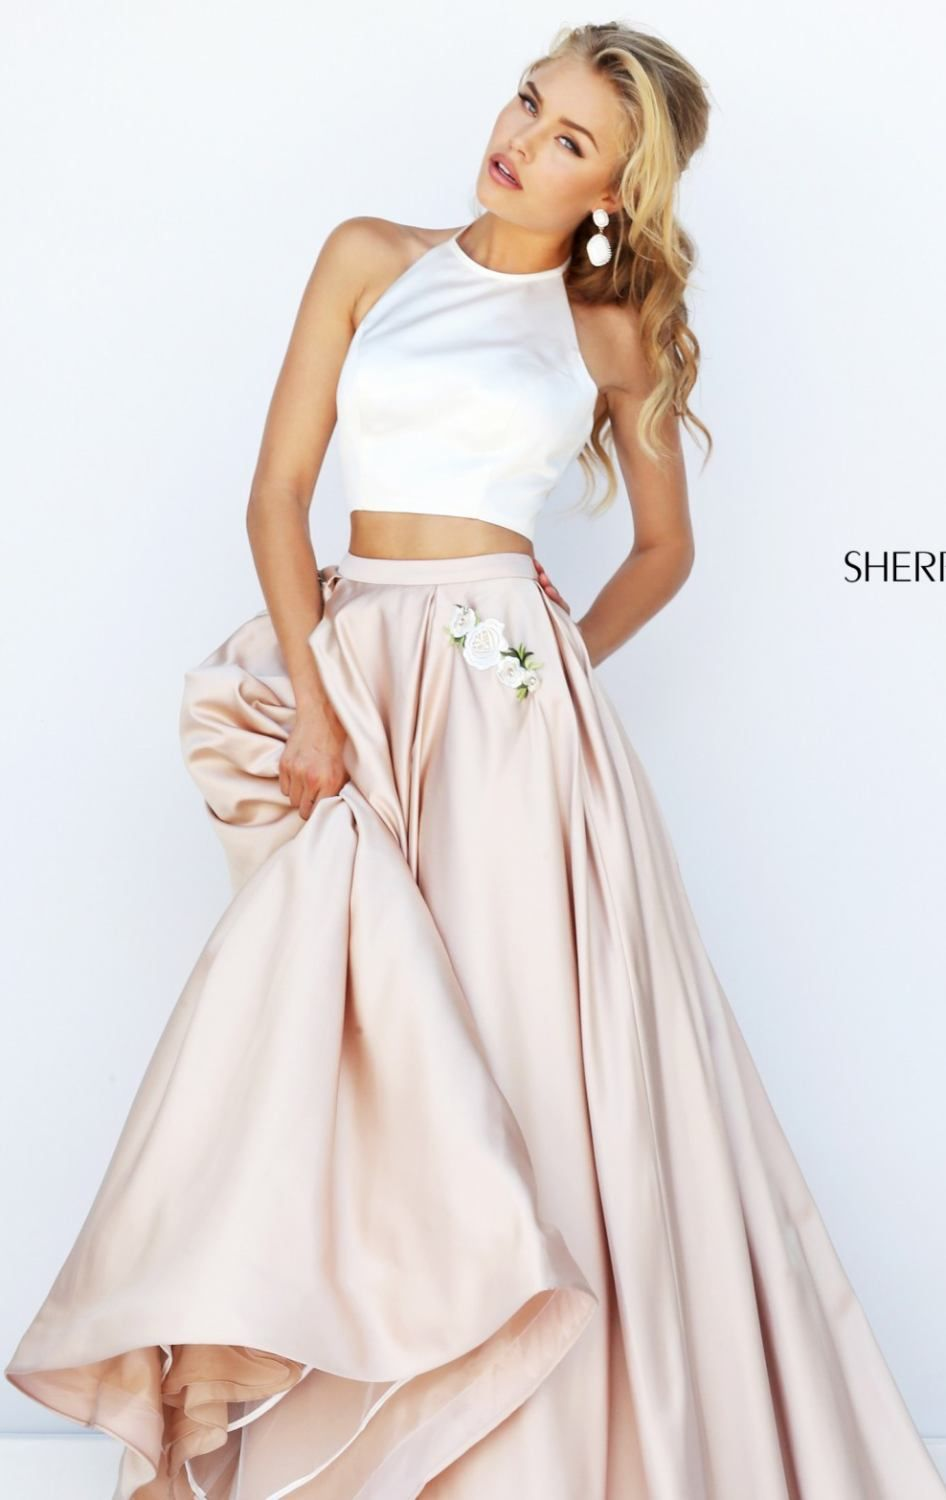 Sherri hill dress missesdressy rags and riches in